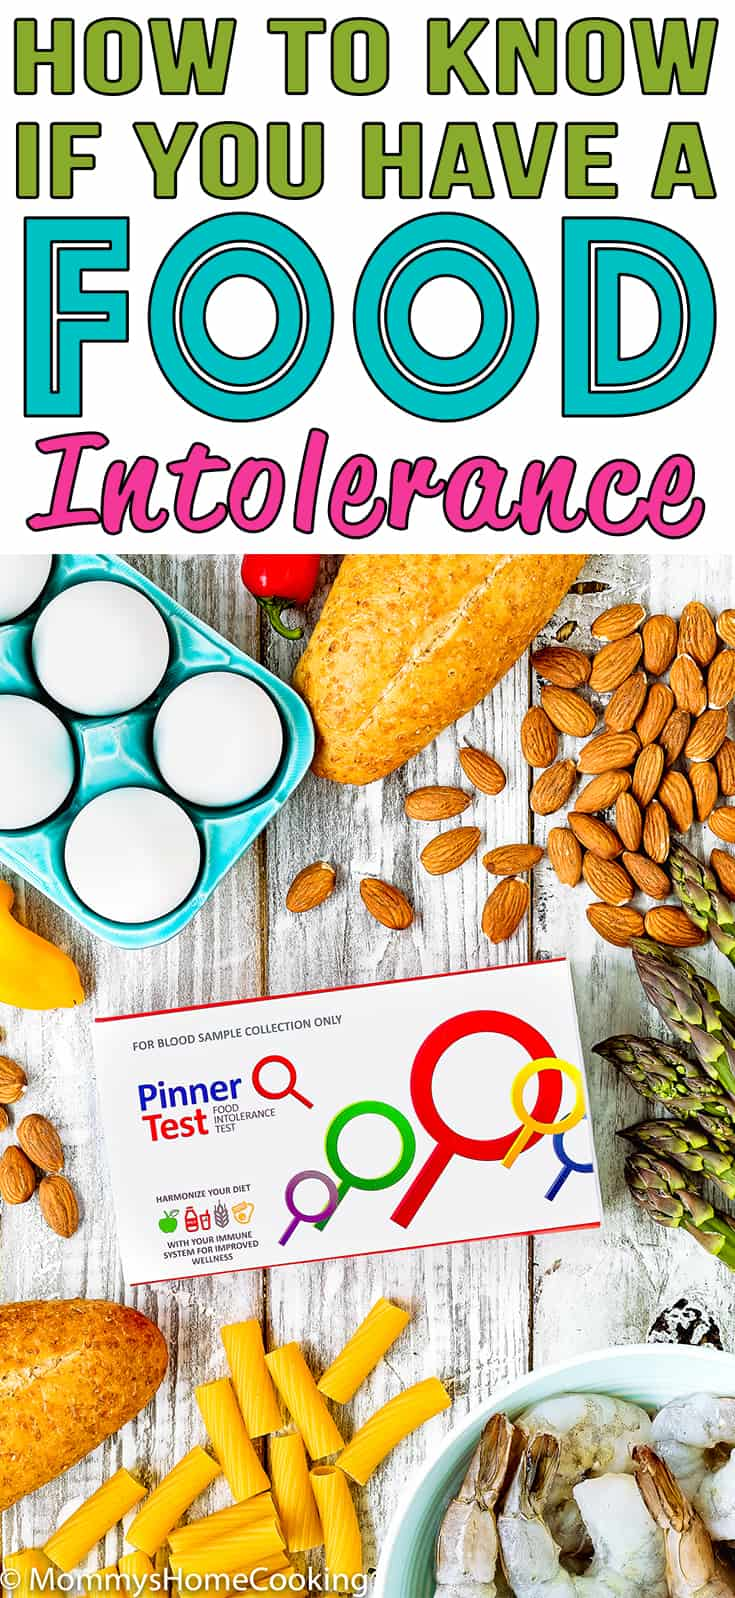 If you feel under the weather all the time and your doctor never find an obvious reason why you might have a food intolerance. Click to learn How to Know If You Have A Food Intolerance with an easy and convenient test you can take in the comfort of your own home. https://mommyshomecooking.com